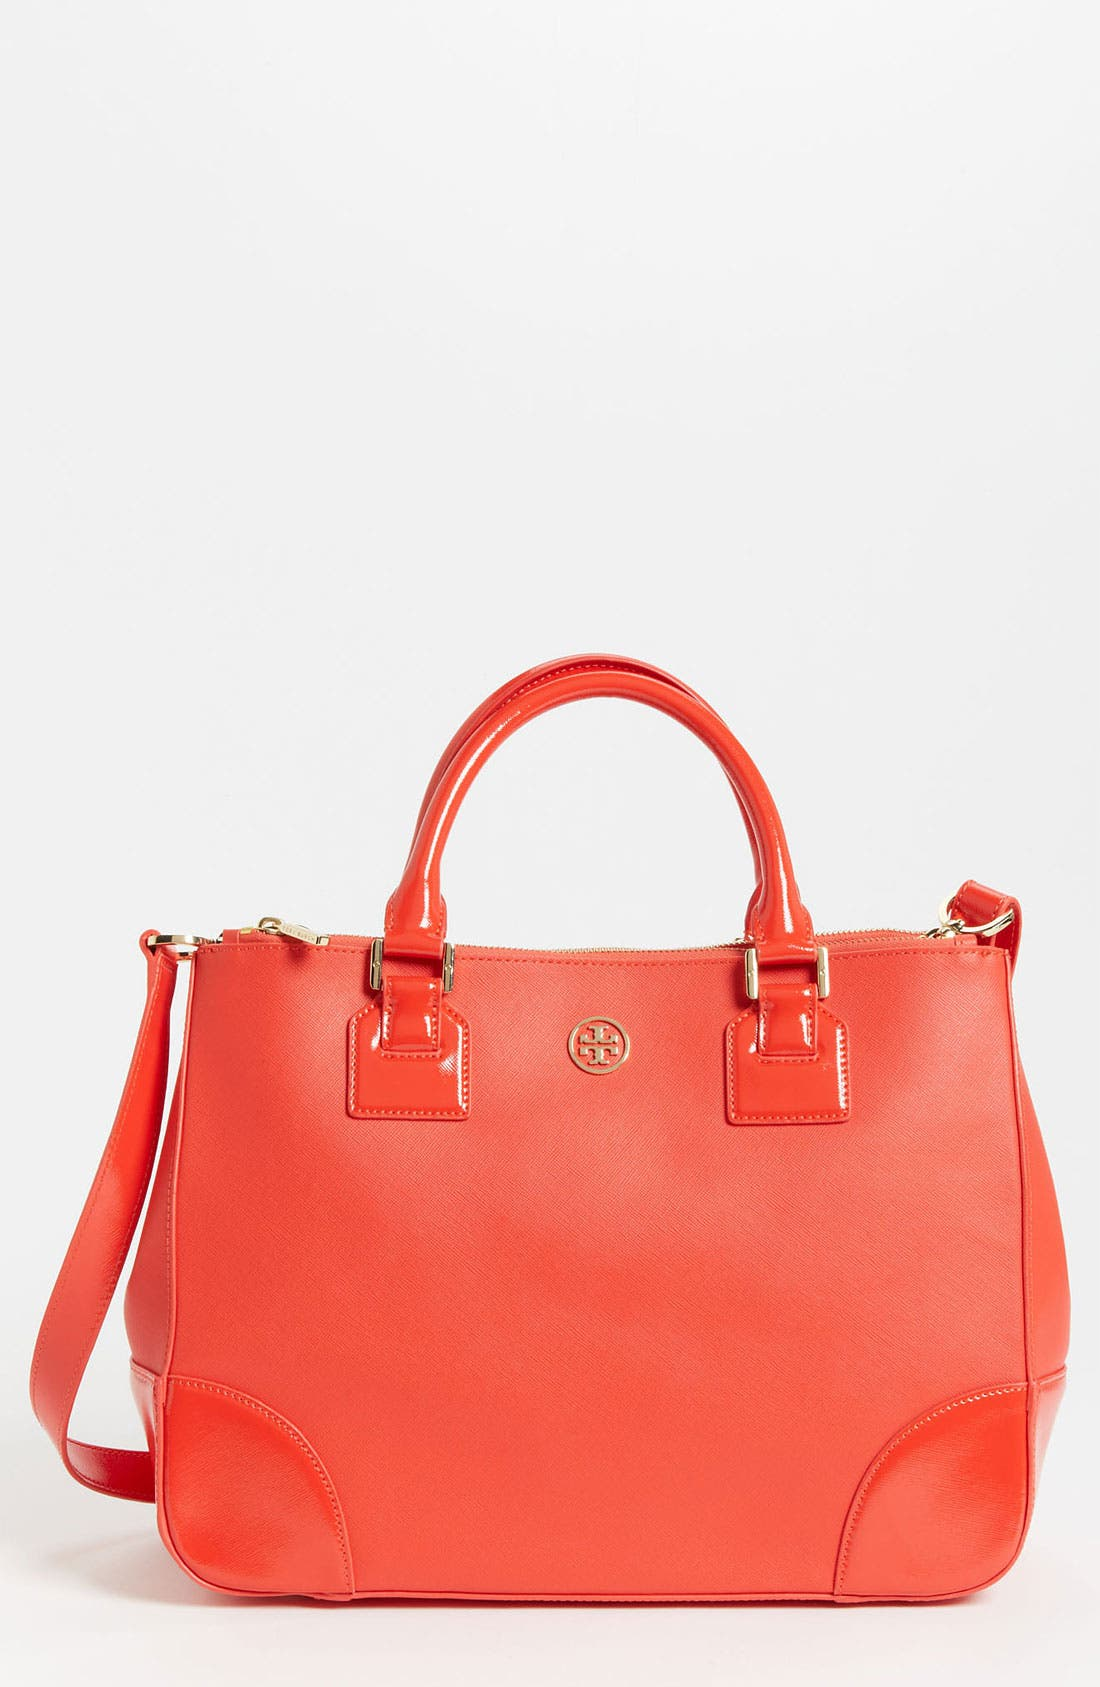 Main Image - Tory Burch 'Robinson' Double Zip Leather Tote